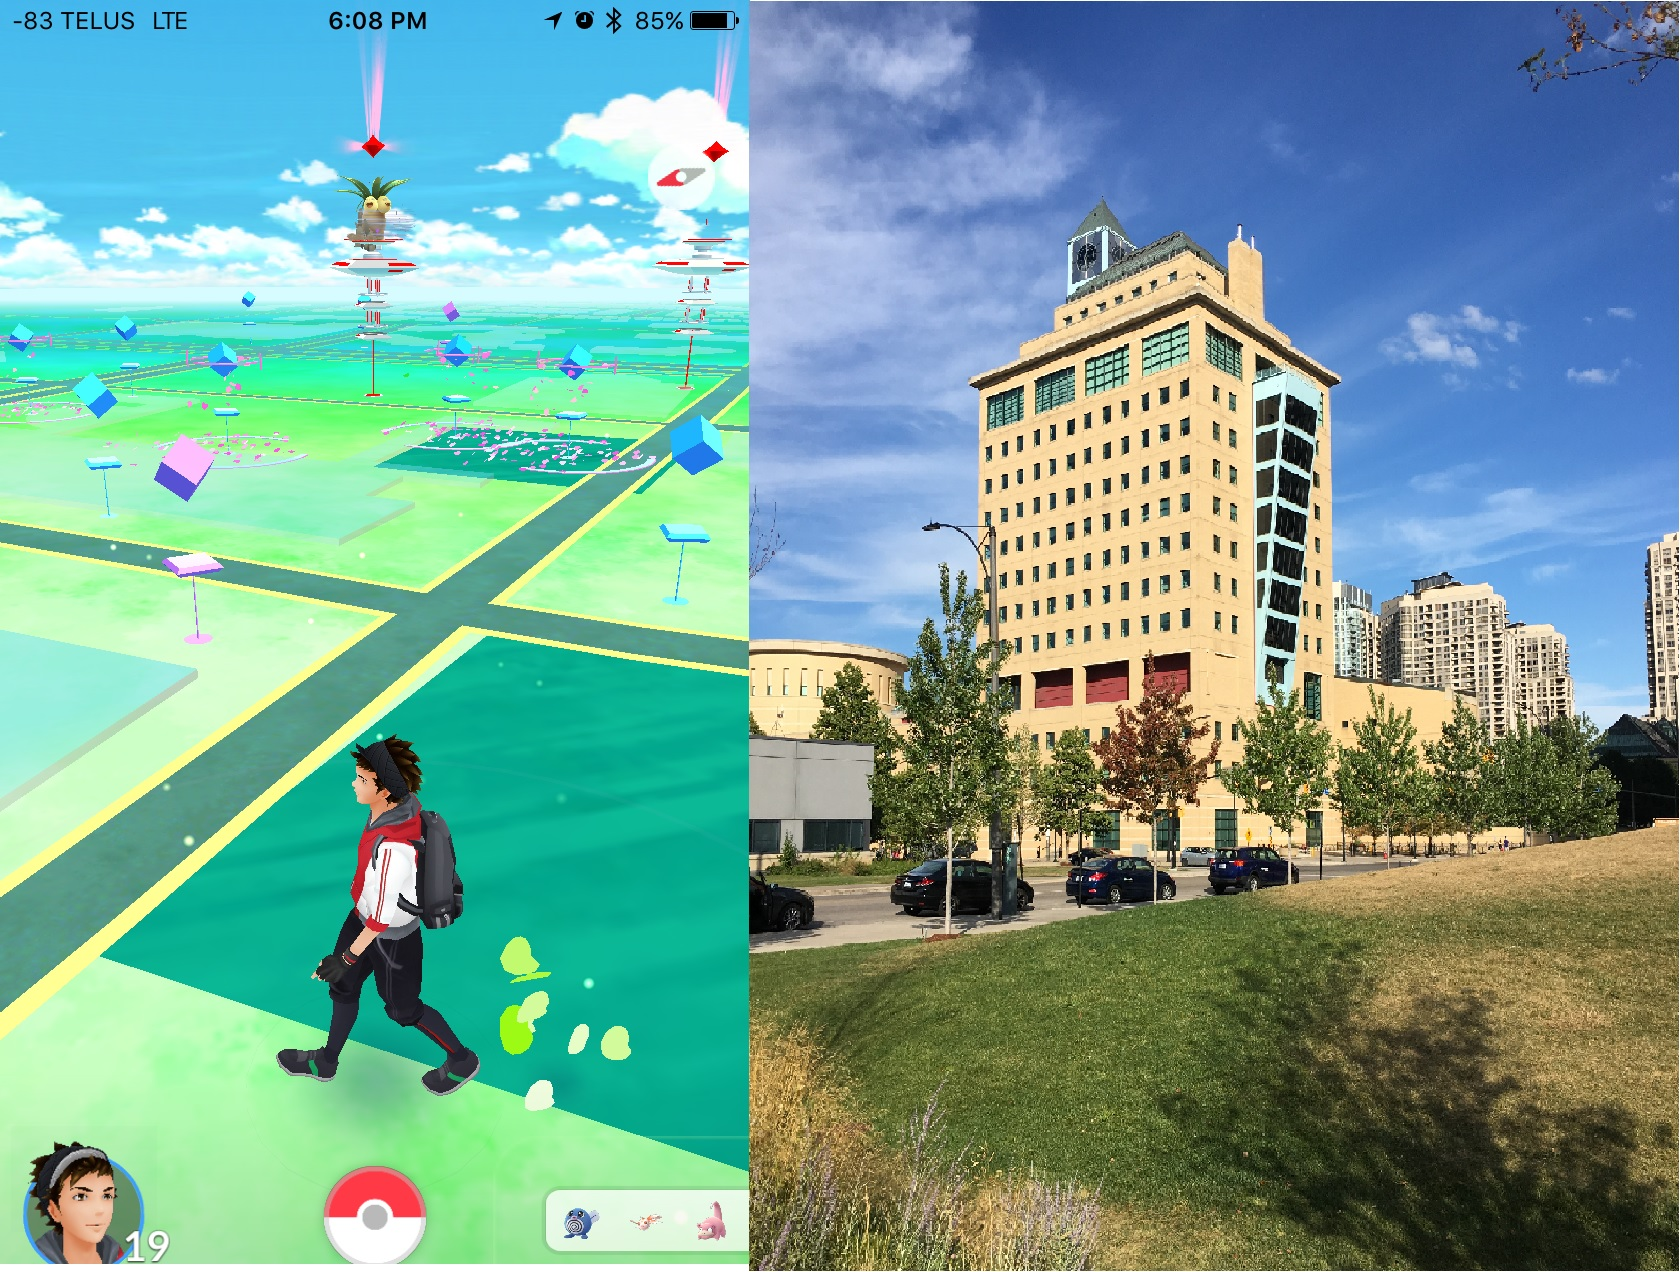 In-game screenshot (left) vs. real-life location (right)